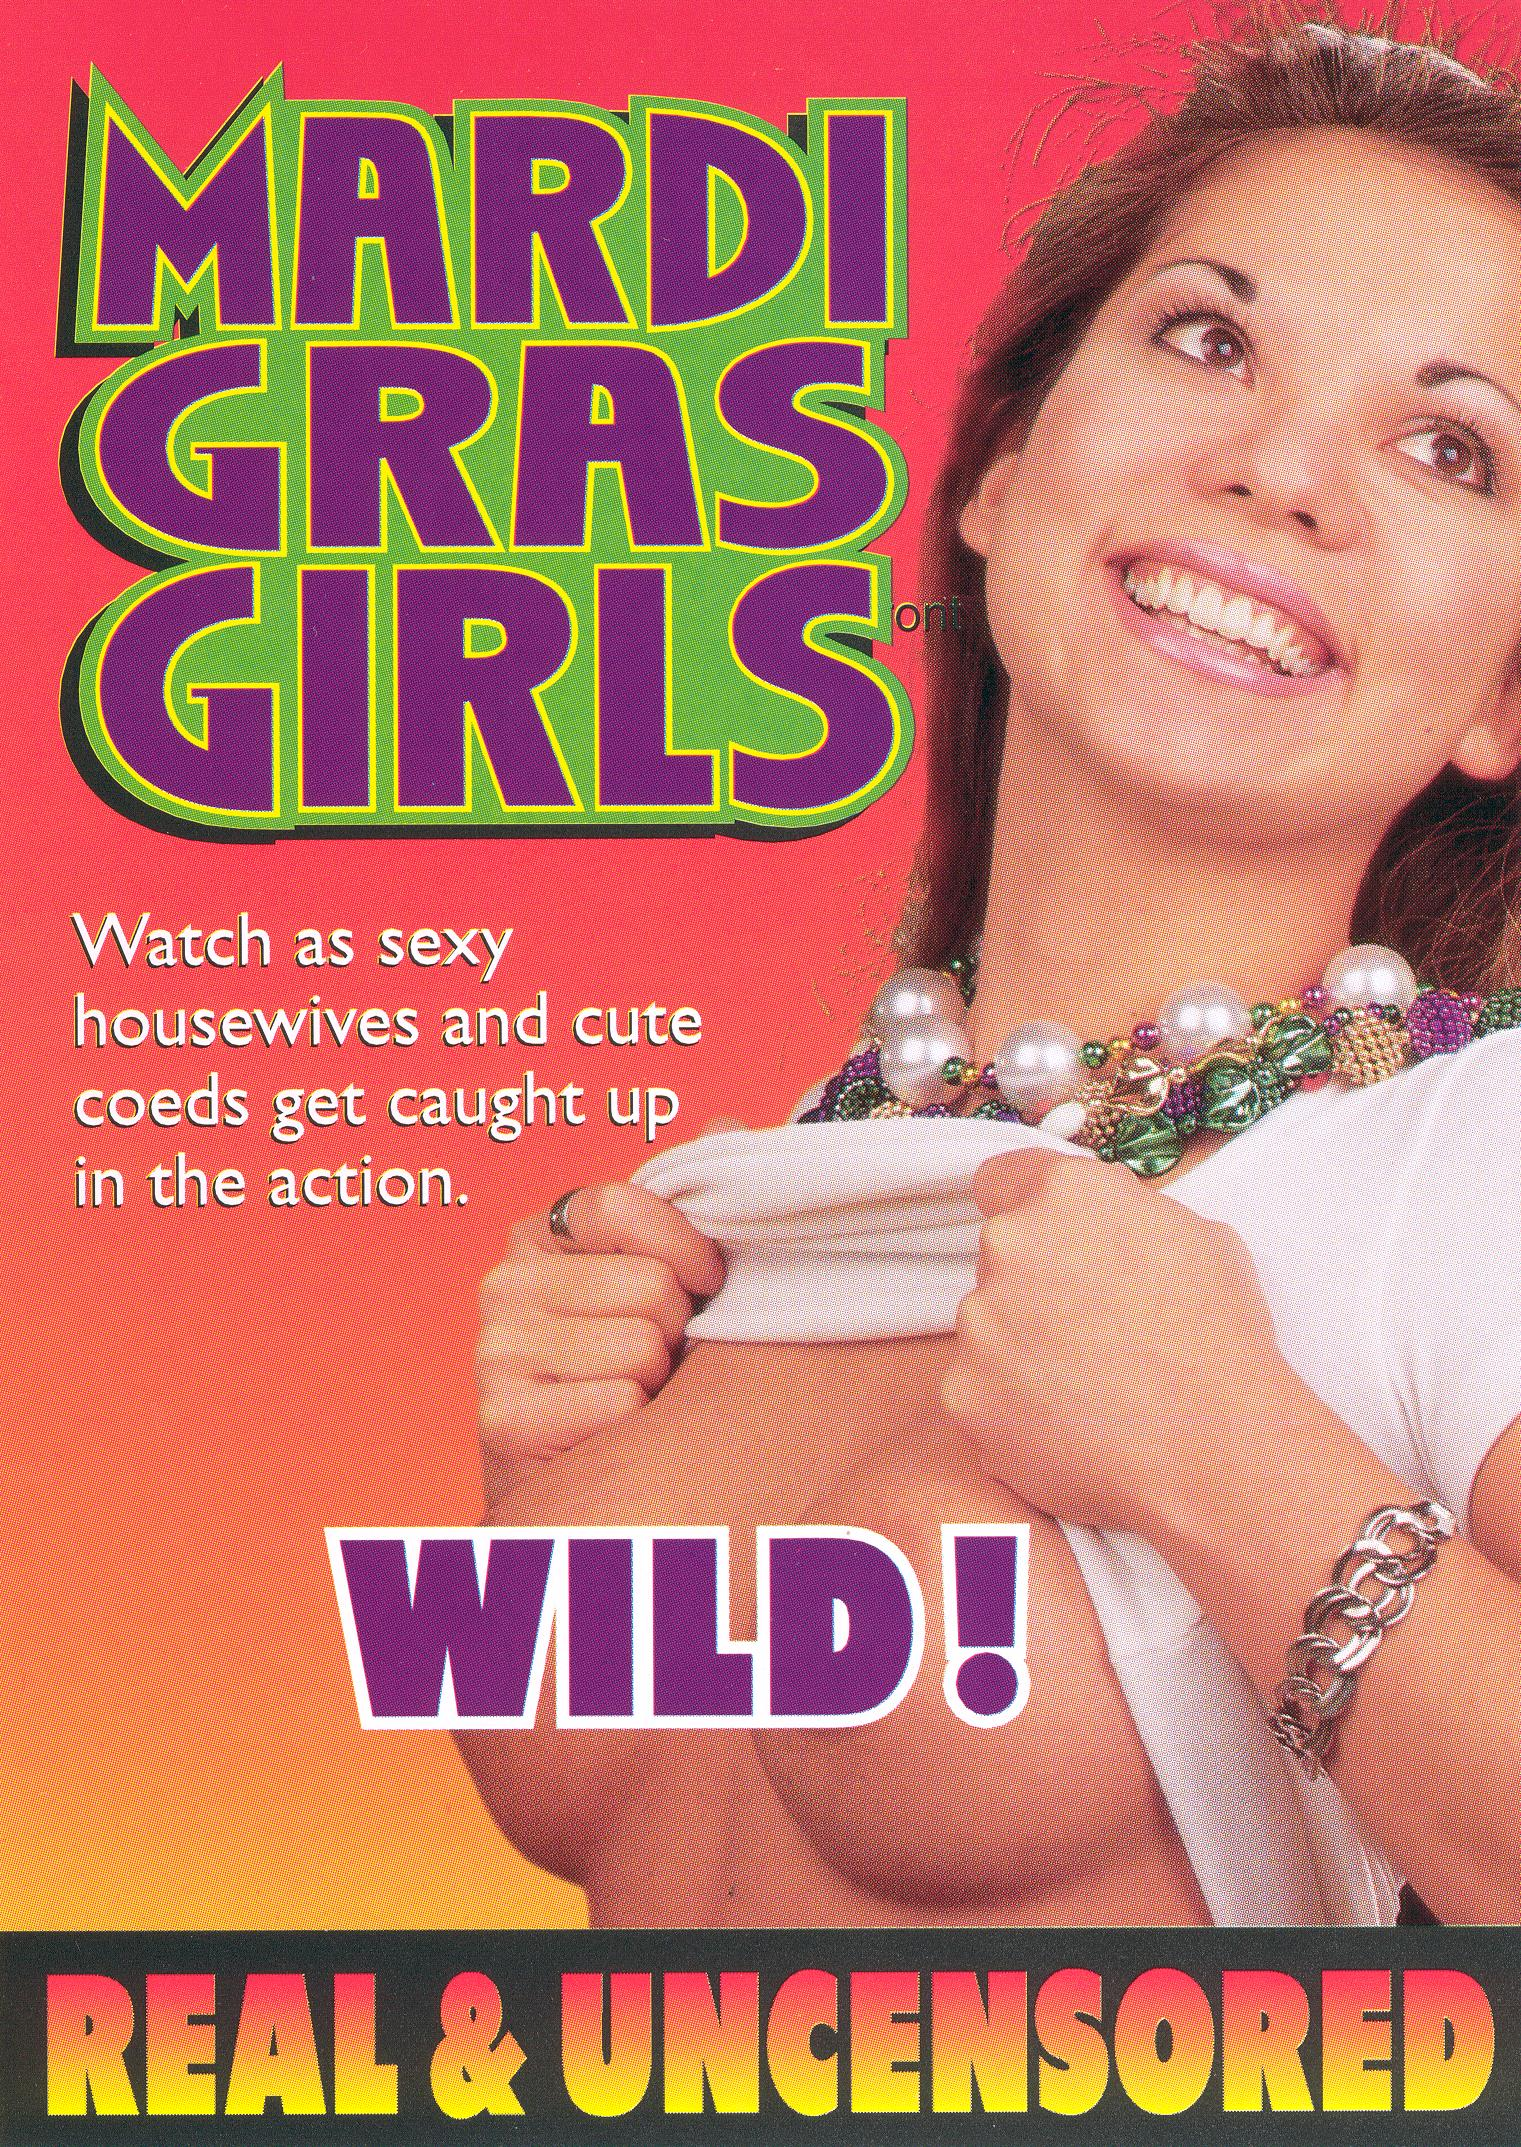 Mardi Gras Girls: Wild! Real & Uncensored